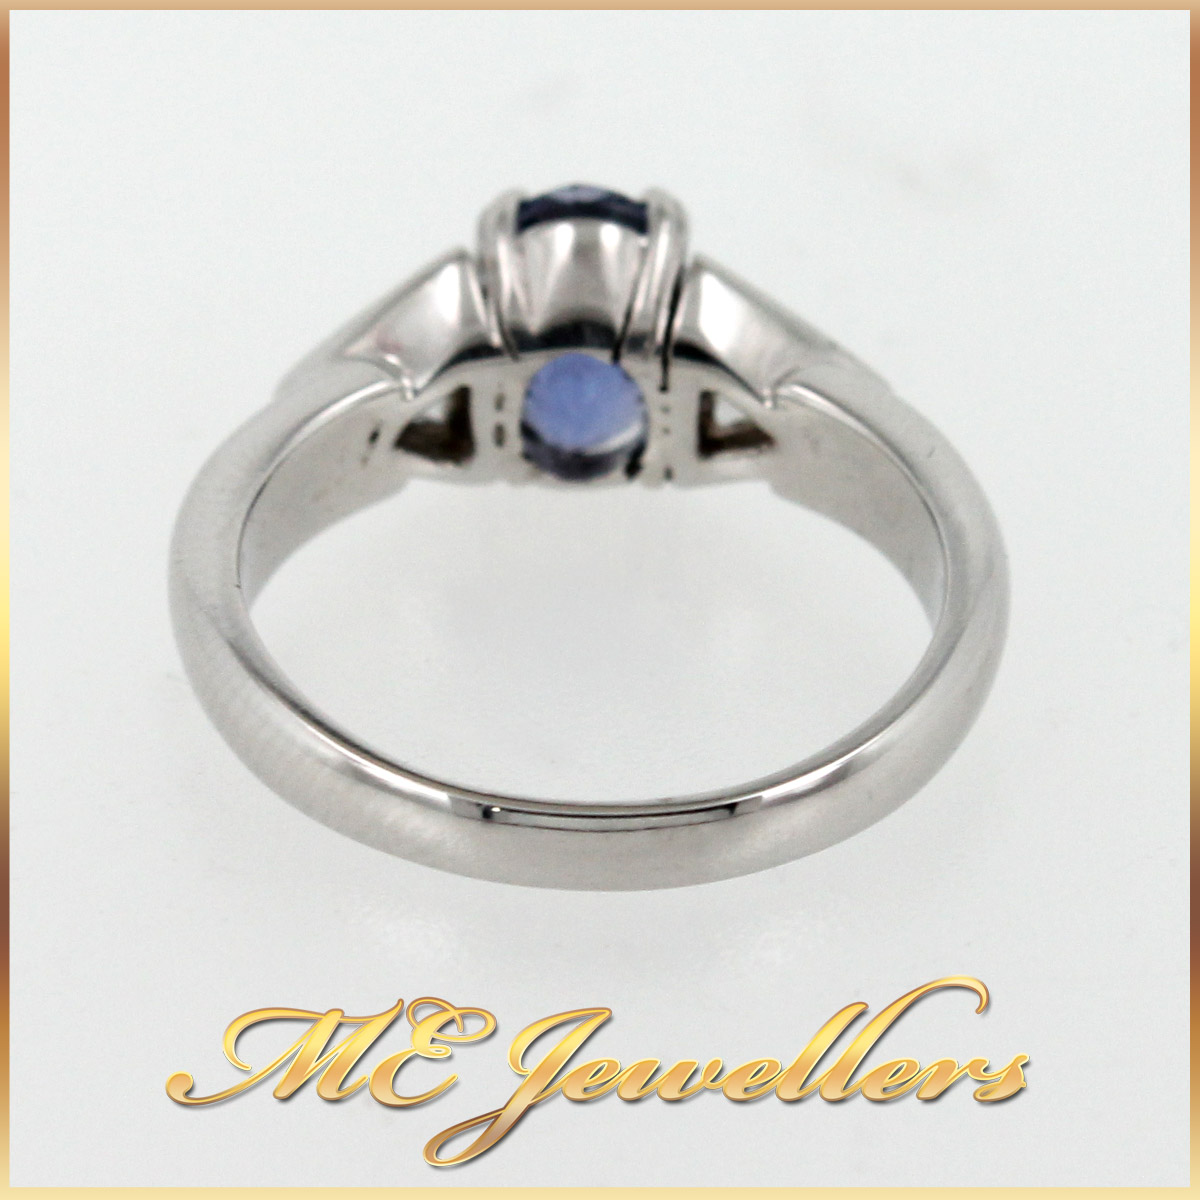 5980 Blue Sapphire Ring With Diamond in 18K White Gold band